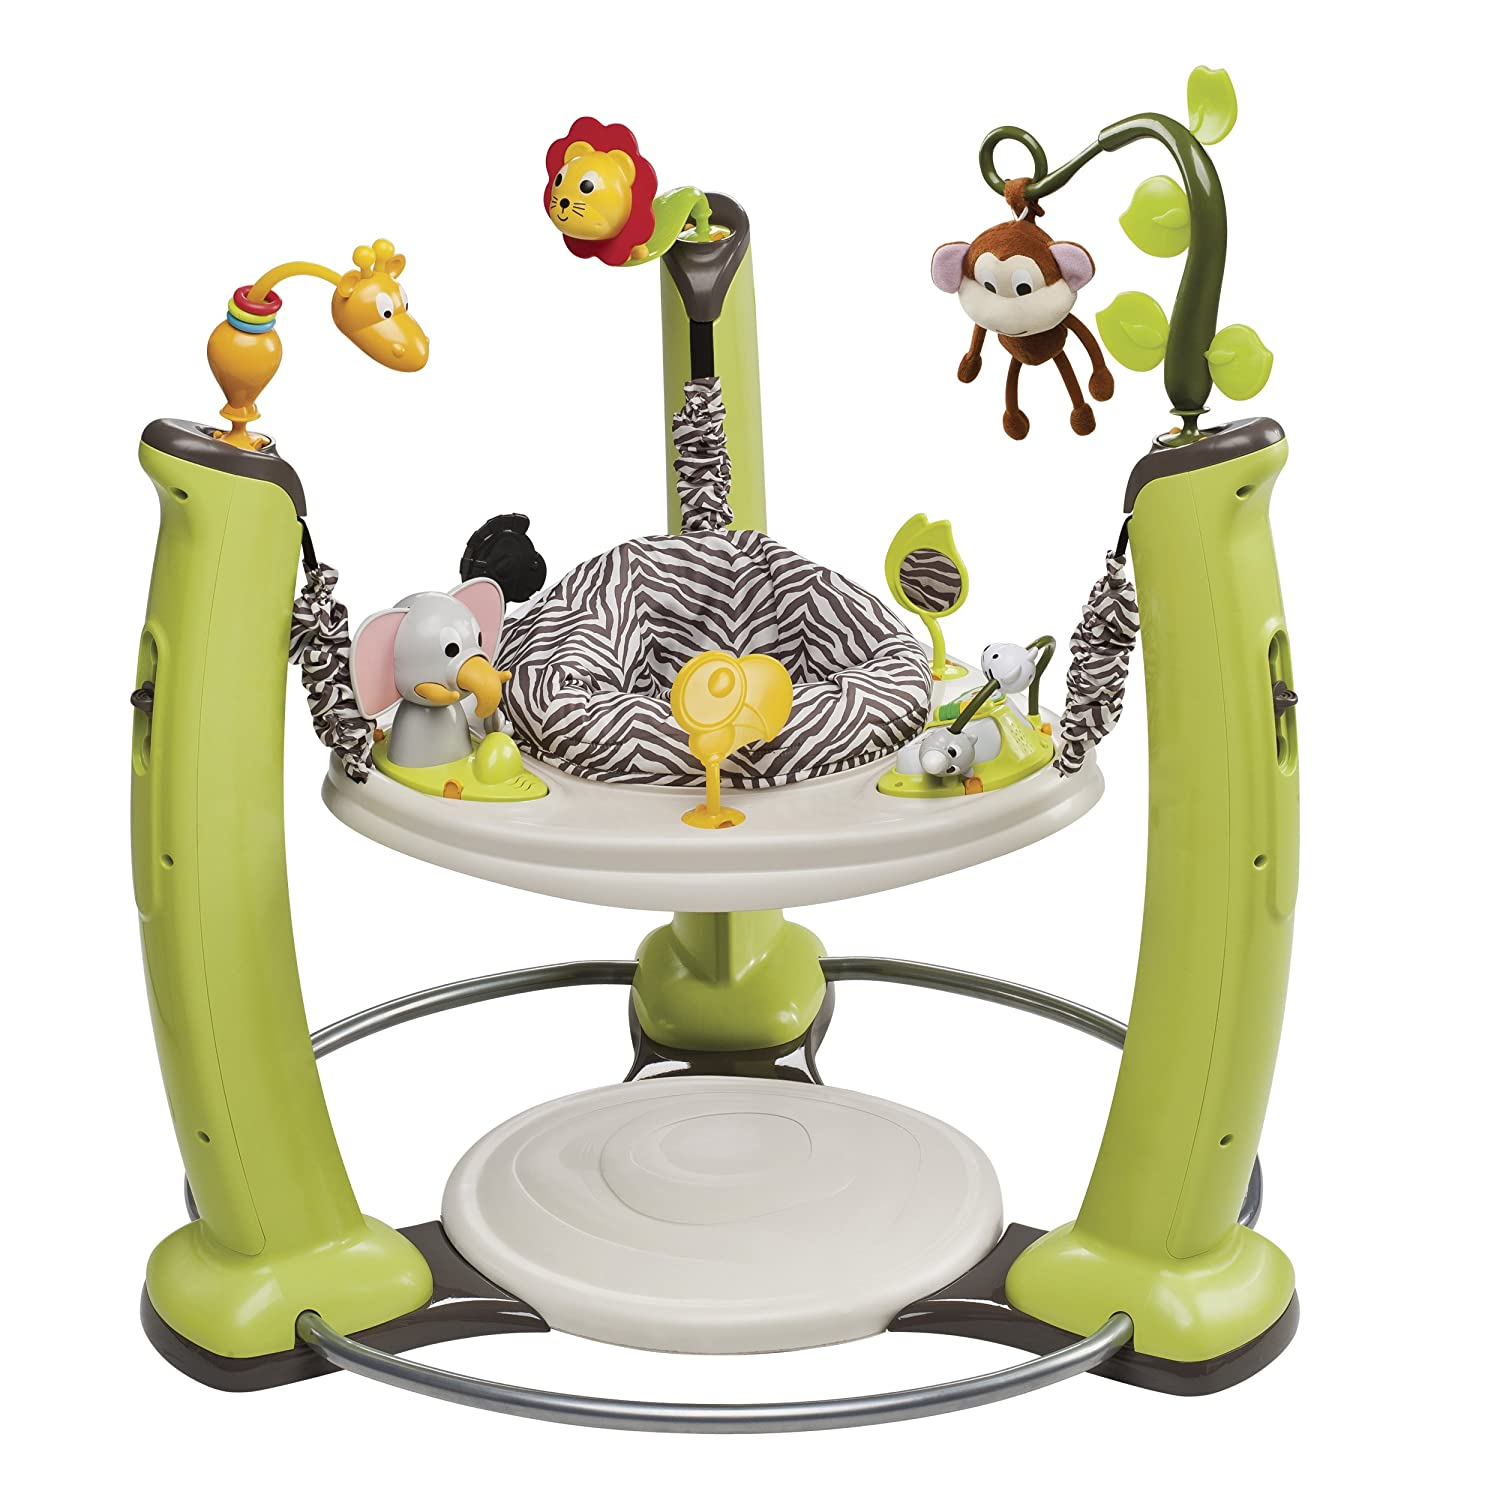 Evenflo ExerSaucer for Baby Jump and Learn Jumper, Jungle Quest